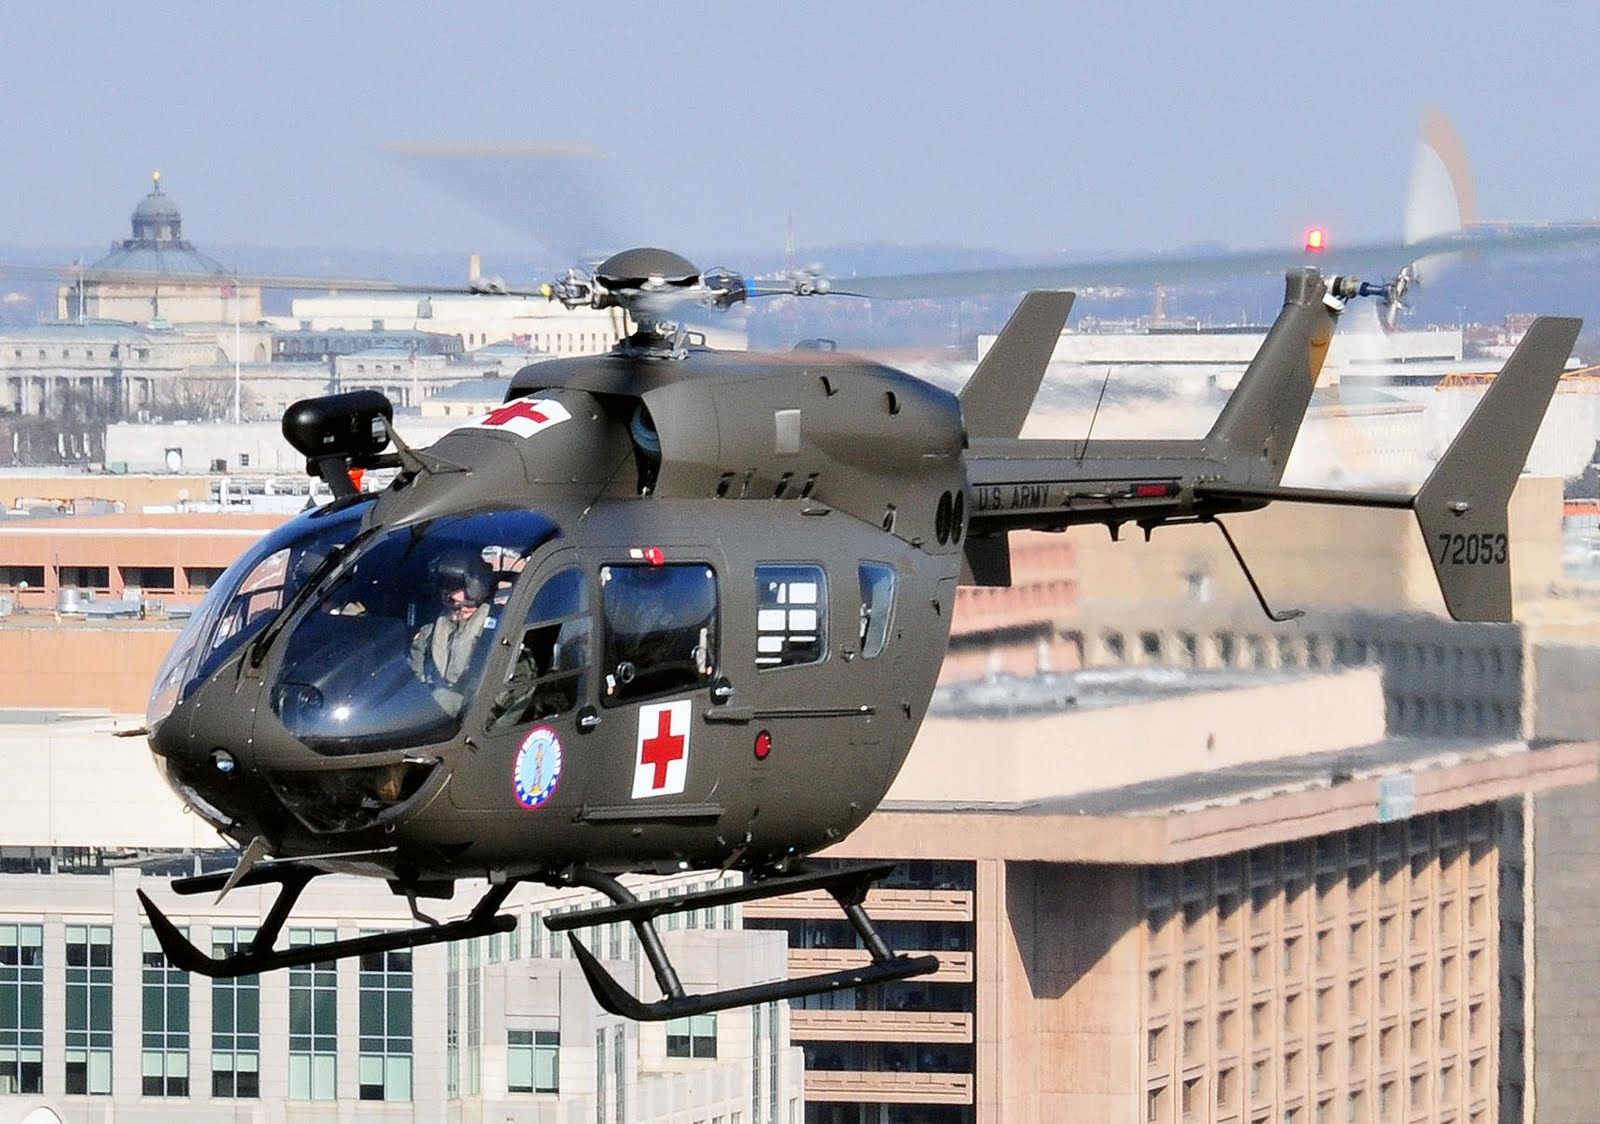 uh 72a lakota light utility helicopter with Uh 72a Lakota Light Utility Helicopter on Uh 72 Lakota Could Be A Candidate For Air Force Duty likewise Uh 72a Lakota Light Utility Helicopters additionally 16728 also Eurocopter Uh 72 Lakota also Uh 72a Lakota.